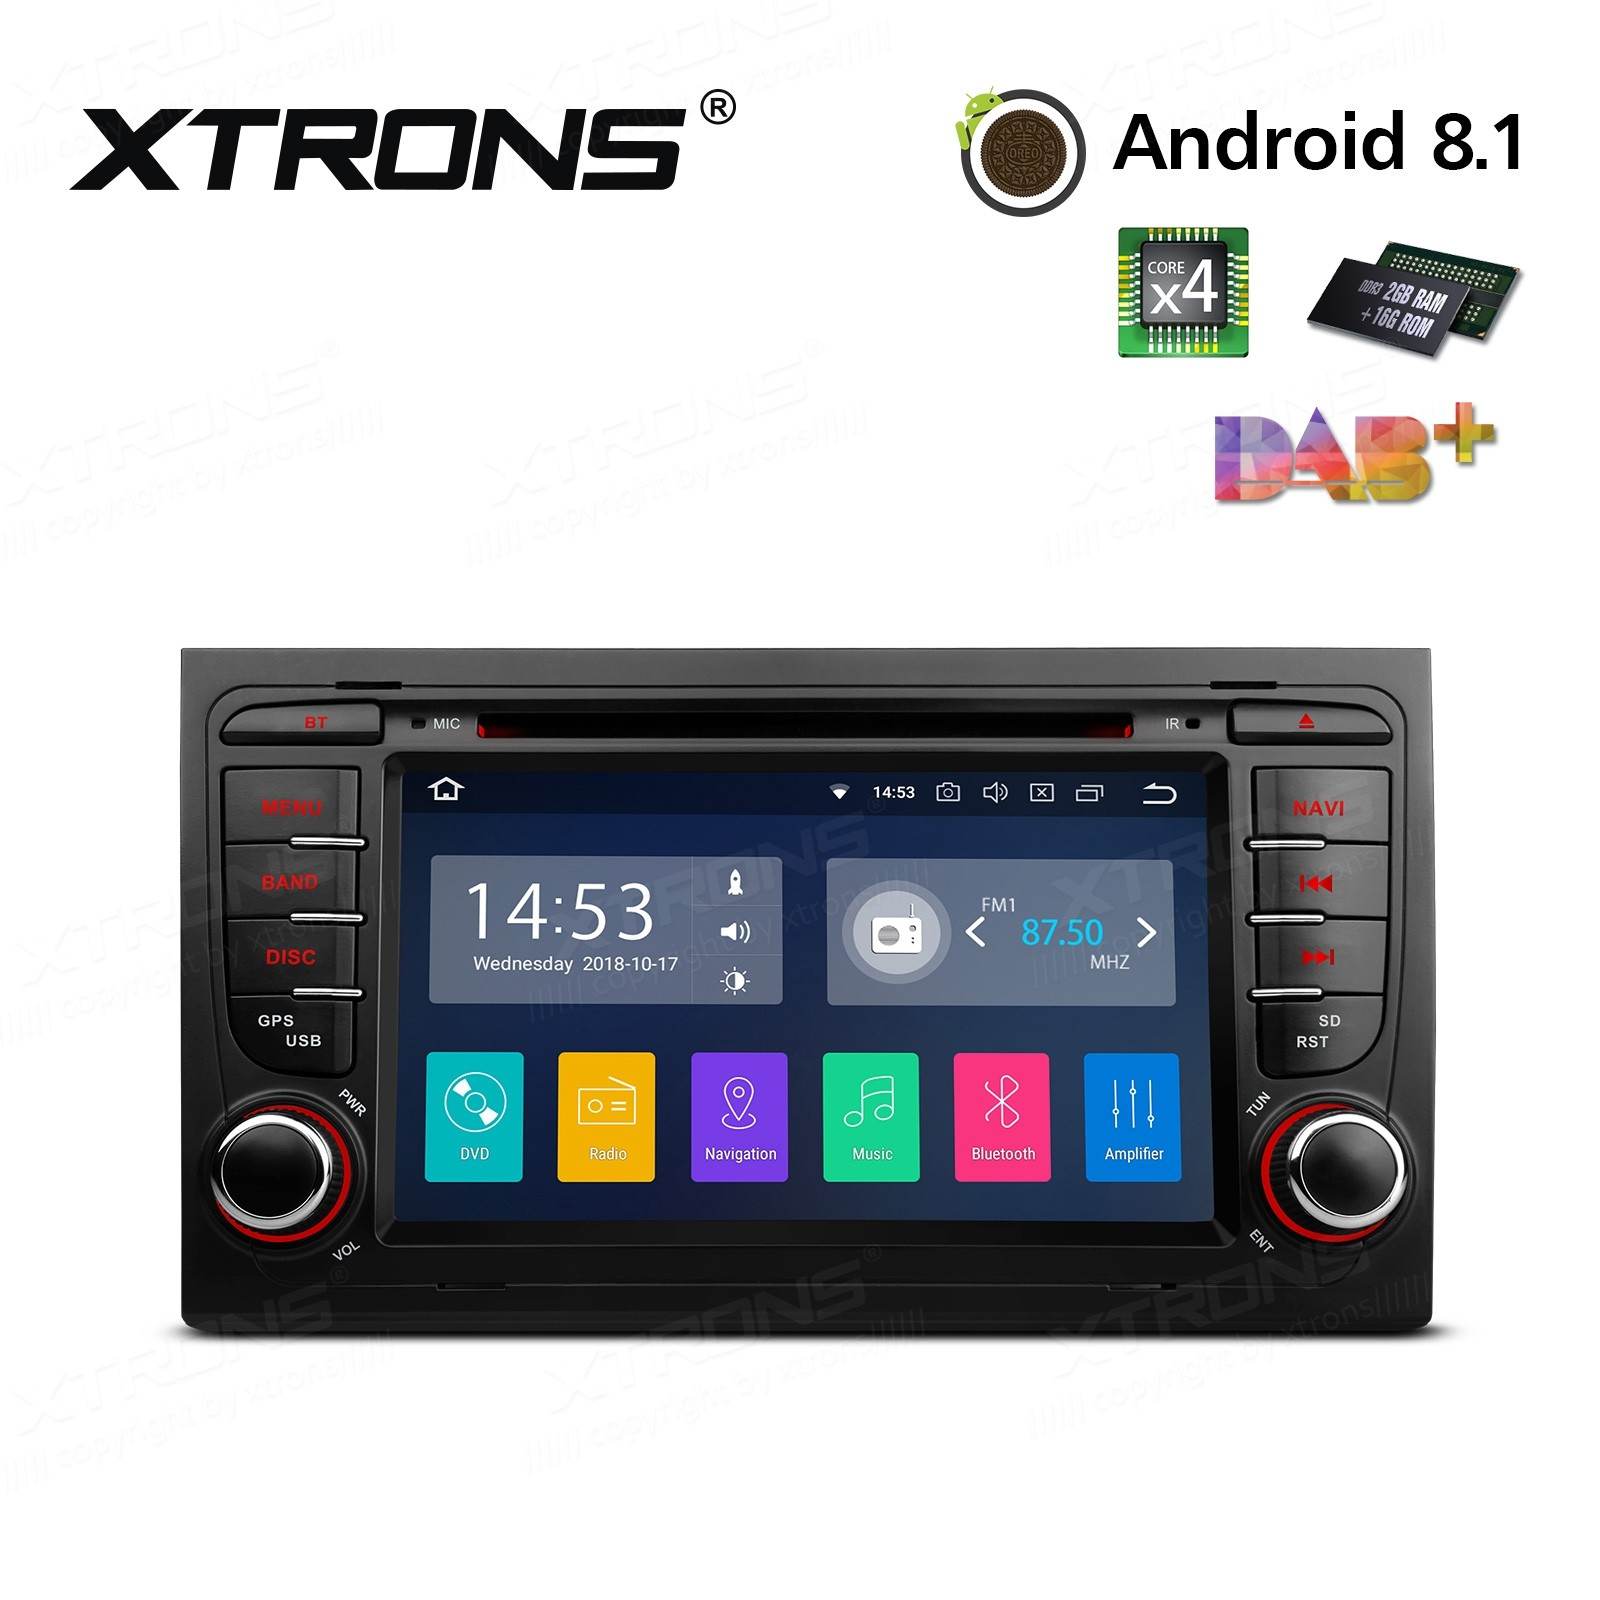 "7""Android 8.1 Quad Core 16GB ROM + 2G RAM car stereo multimedia navigation system with Full RCA Output Costom Fit for Audi"